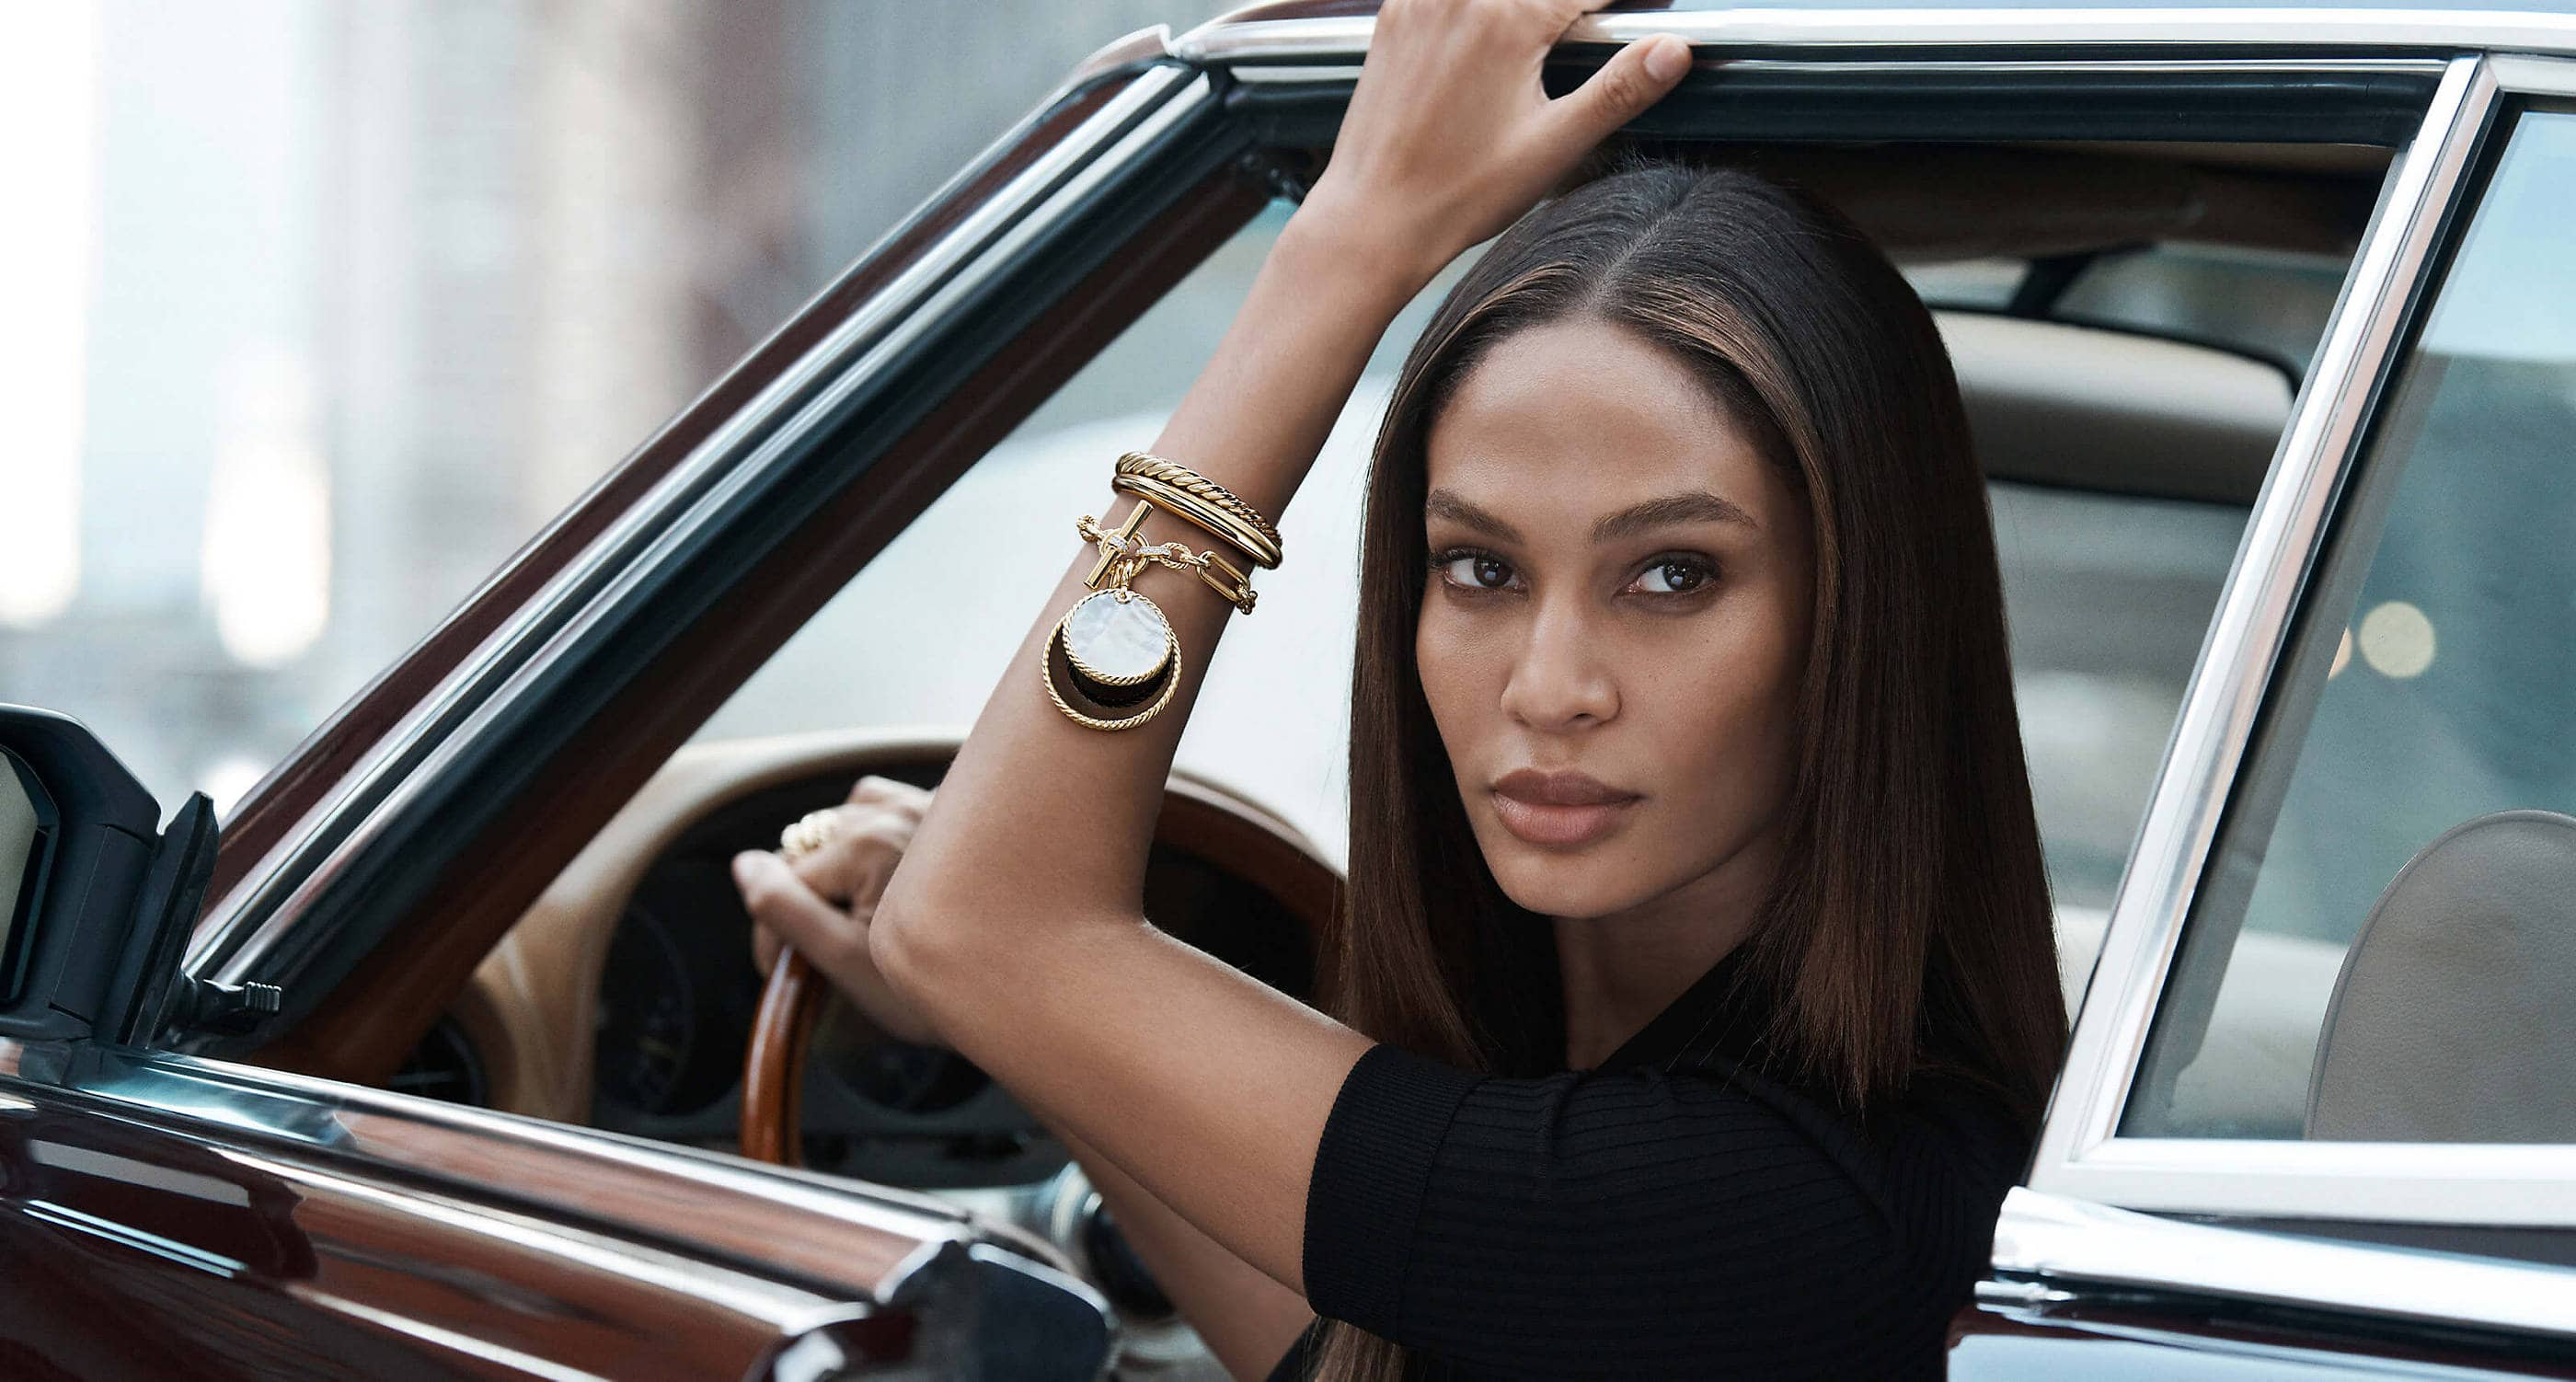 model Joan Smalls from the shoulder up sitting in a car with one arm raised in the window. She's wearing a black top and several David Yurman bracelets with DY Elements enhancers stacked on one wrist. The jewelry is crafted from 18K yellow gold with or without pavé diamonds, mother-of-pearl or black onyx.